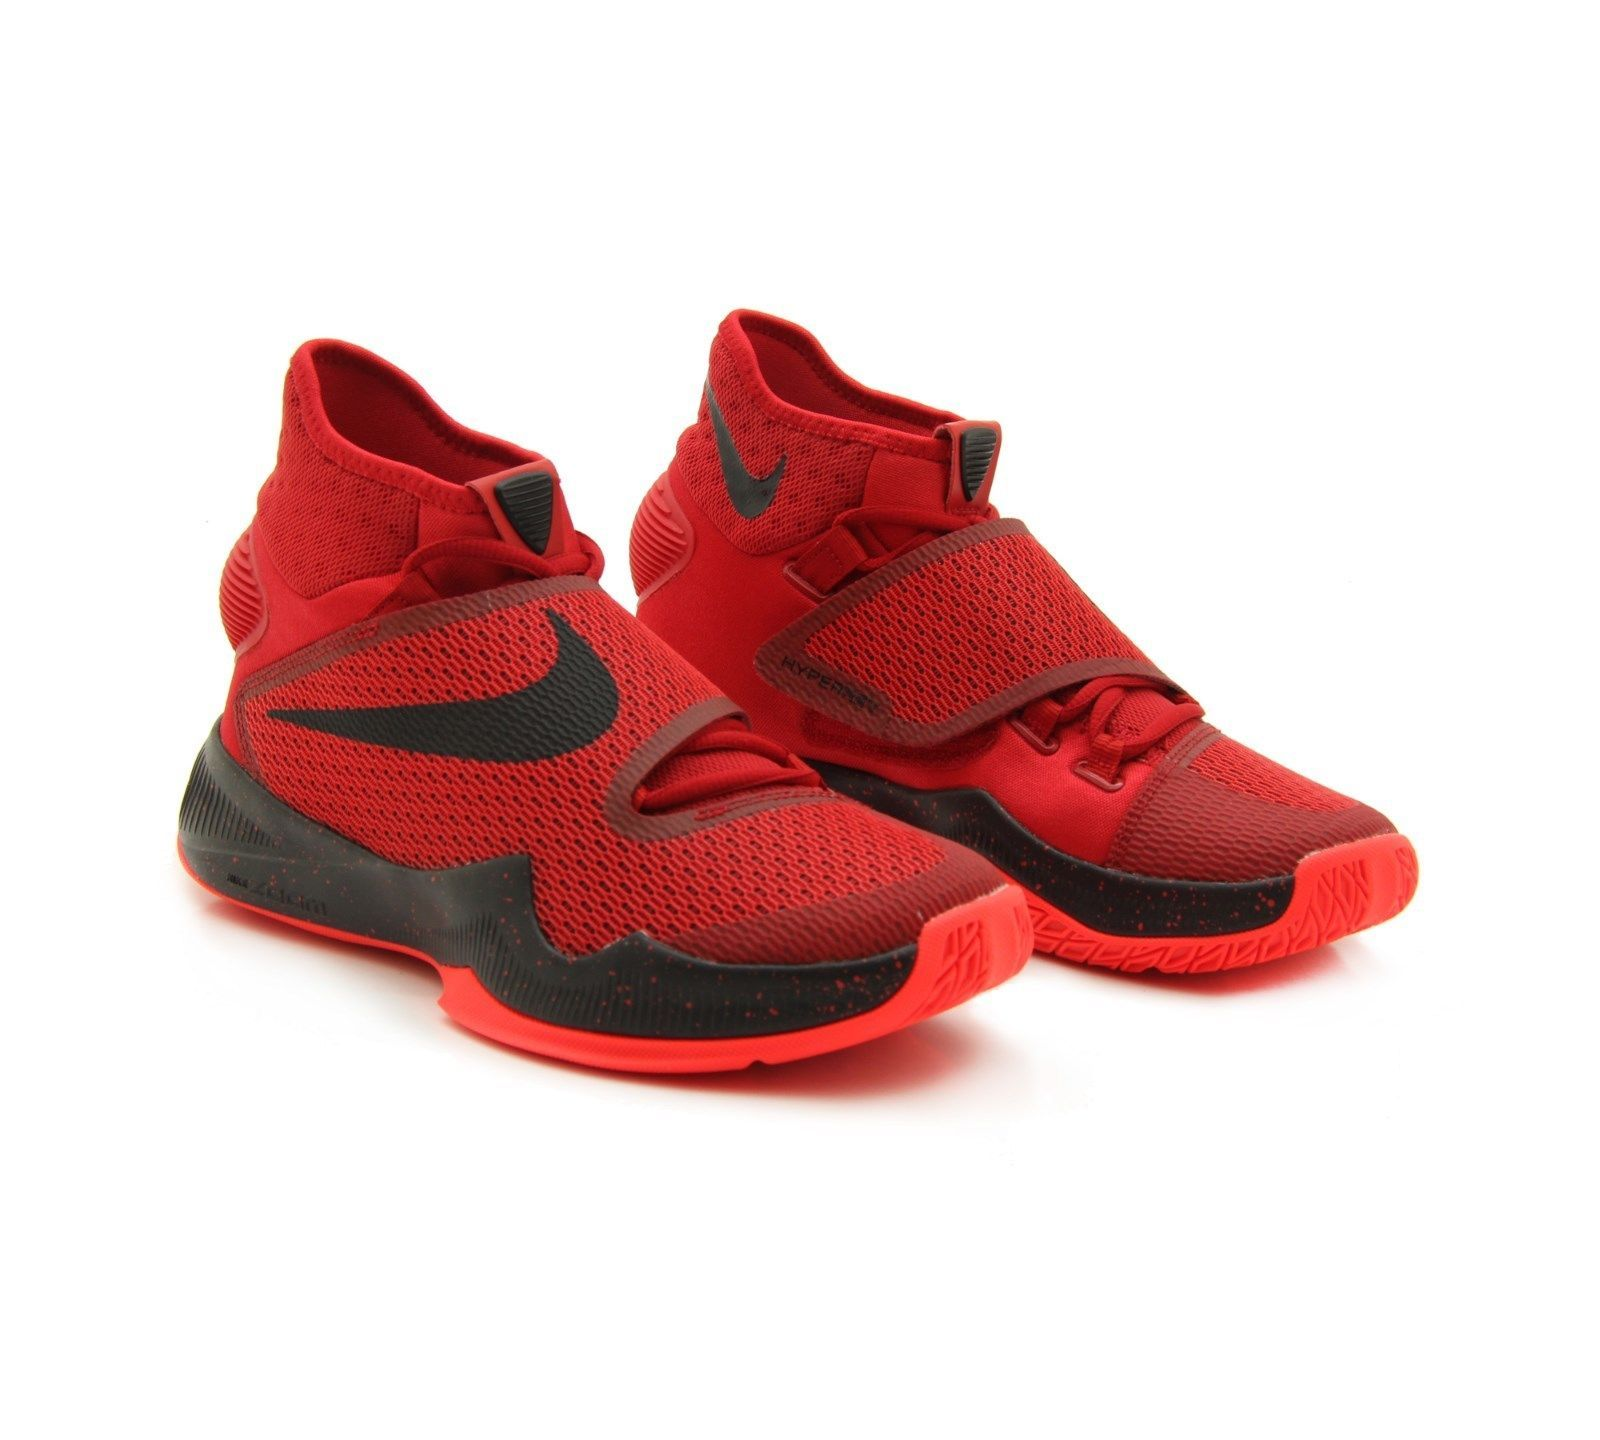 more photos a52fb d1ce9 Nike Men s Zoom Hyperrev 2016 Sneakers Size and similar items. S l1600